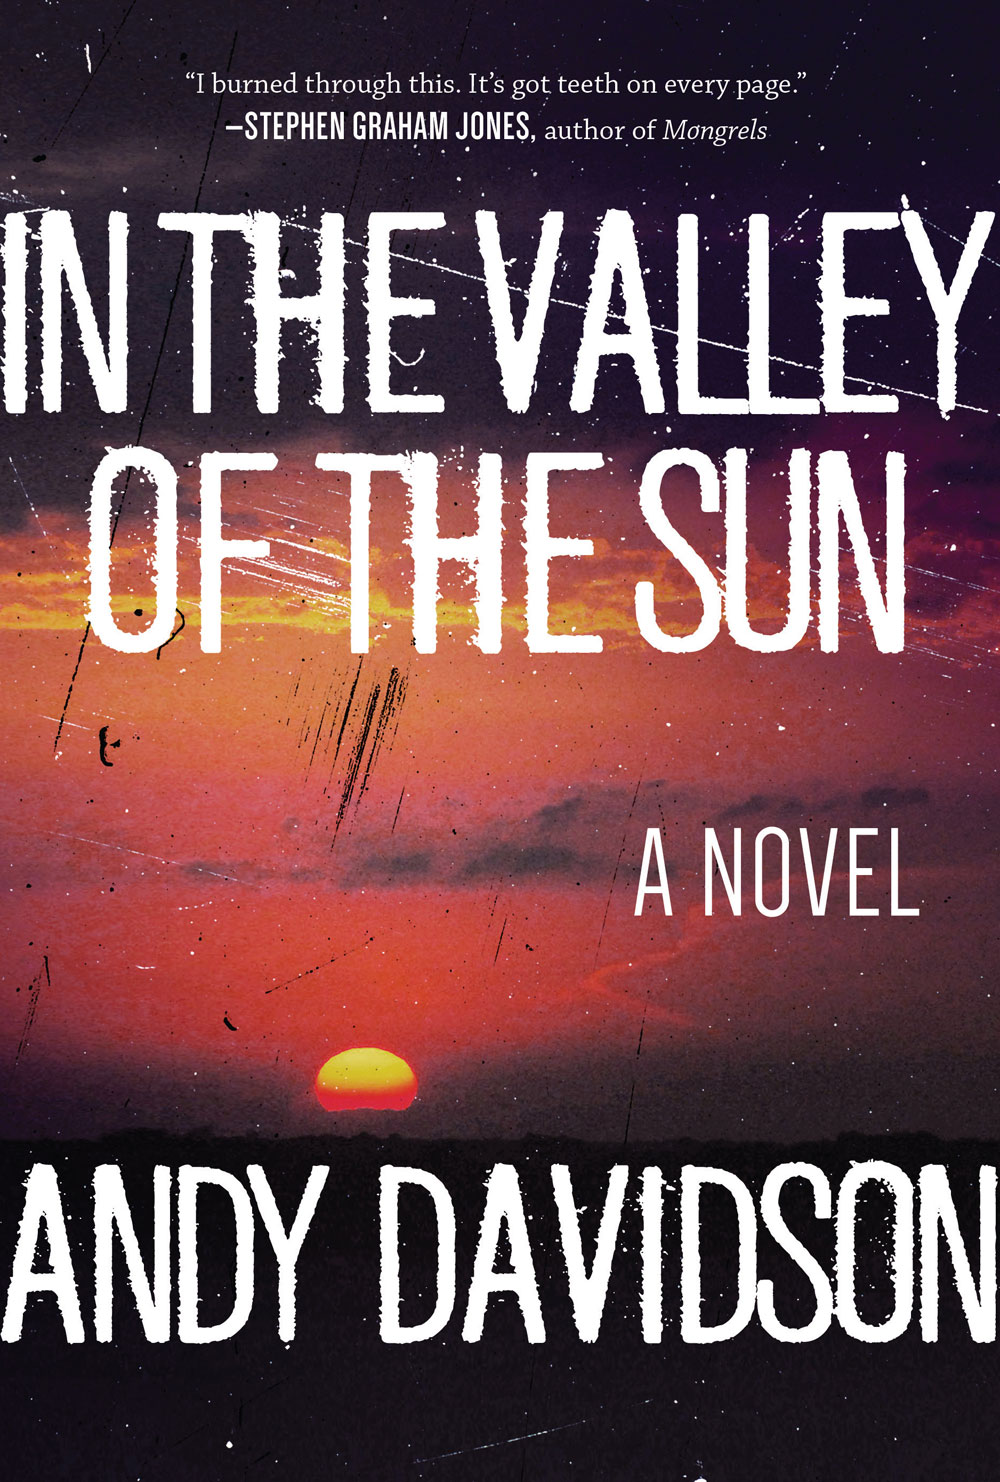 In the Valley of the Sun 1 - Andy Davidson Takes Us In the Valley of the Sun this June